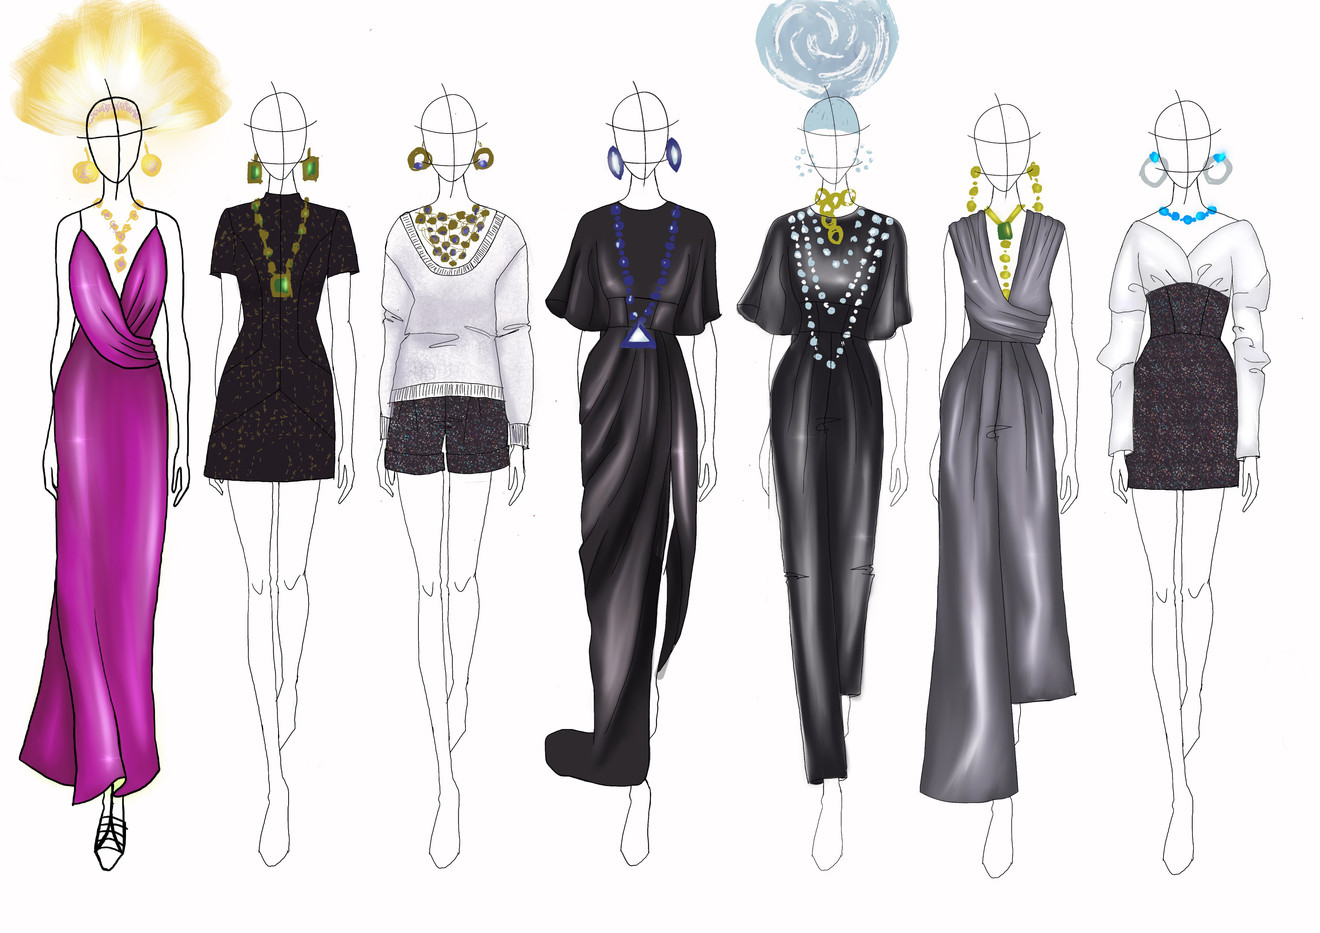 Initial fashion line sketches for Lesunja Jewellery